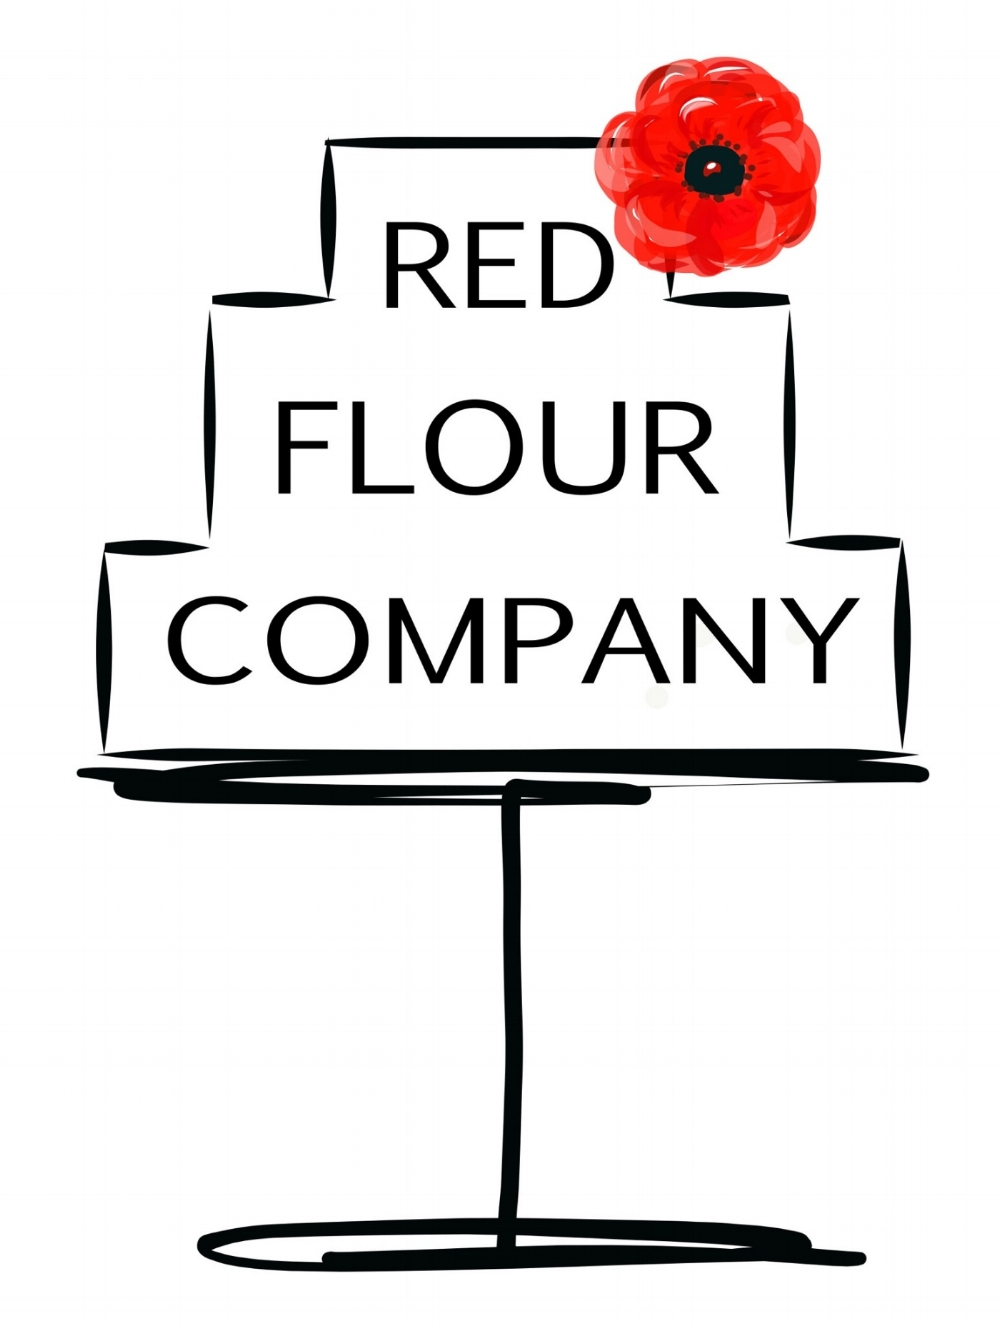 RedFlowerLogo.jpg.jpeg